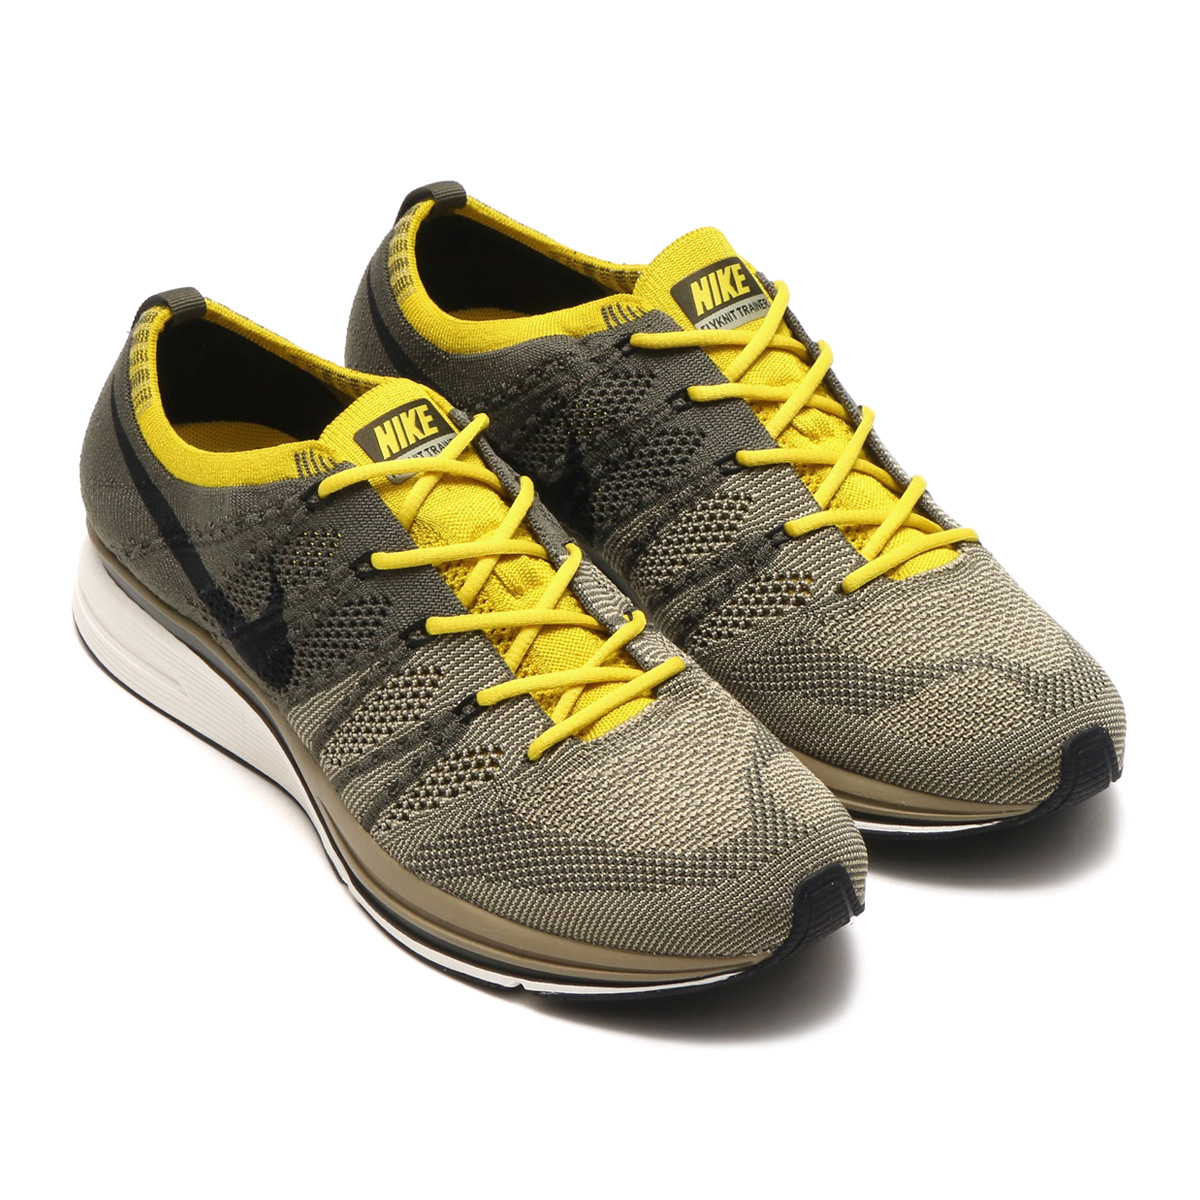 78a2e536c167 NIKE FLYKNIT TRAINER (Nike fried food knit trainer) (CARGO KHAKI BLACK-SAIL-BRIGHT  CITRON) 18SP-S